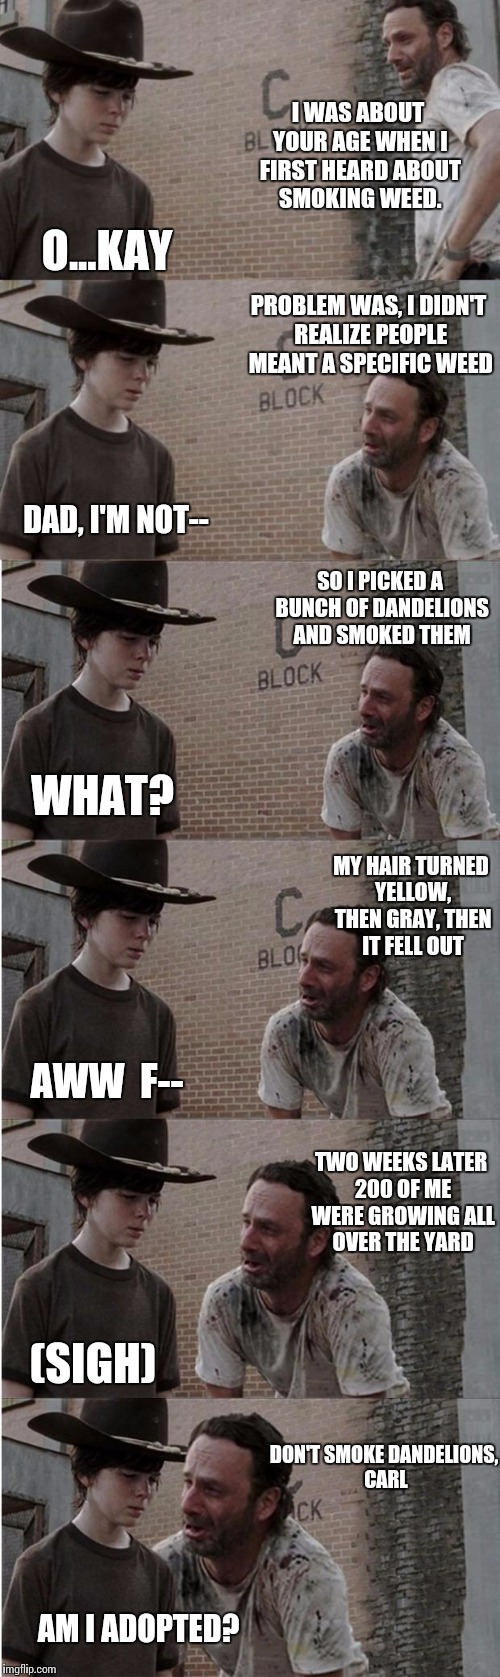 The Walking Dad | I WAS ABOUT YOUR AGE WHEN I FIRST HEARD ABOUT SMOKING WEED. O...KAY PROBLEM WAS, I DIDN'T REALIZE PEOPLE MEANT A SPECIFIC WEED DAD, I'M NOT- | image tagged in memes,rick and carl longer,dandelion,weird,flesh wound,vaginal mesh | made w/ Imgflip meme maker